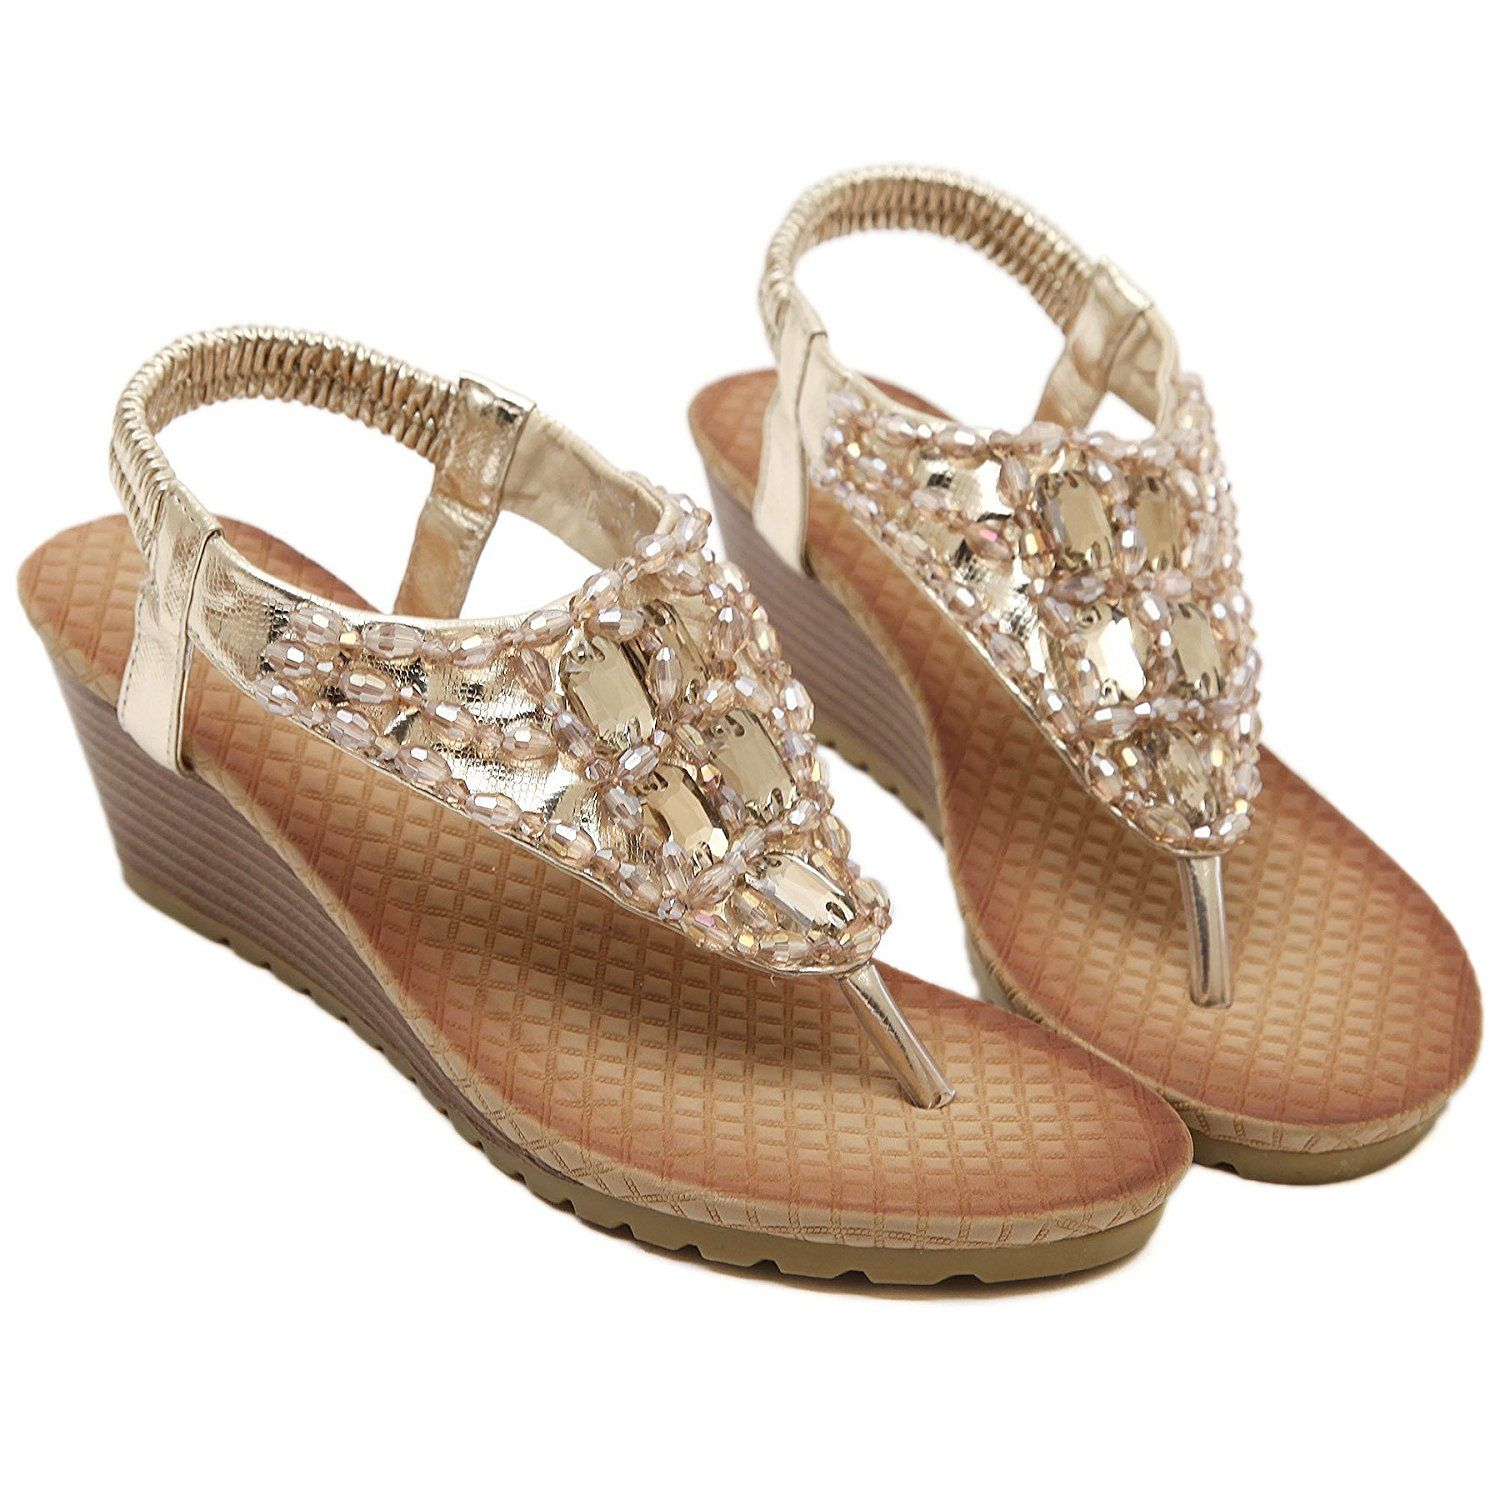 PU Fur Bohemia Slipslop Fashion Sandals Low Heel For Women Euramerican Crystal Y-Shaped 2.1in -- New and awesome product awaits you, Read it now  : Lace up sandals